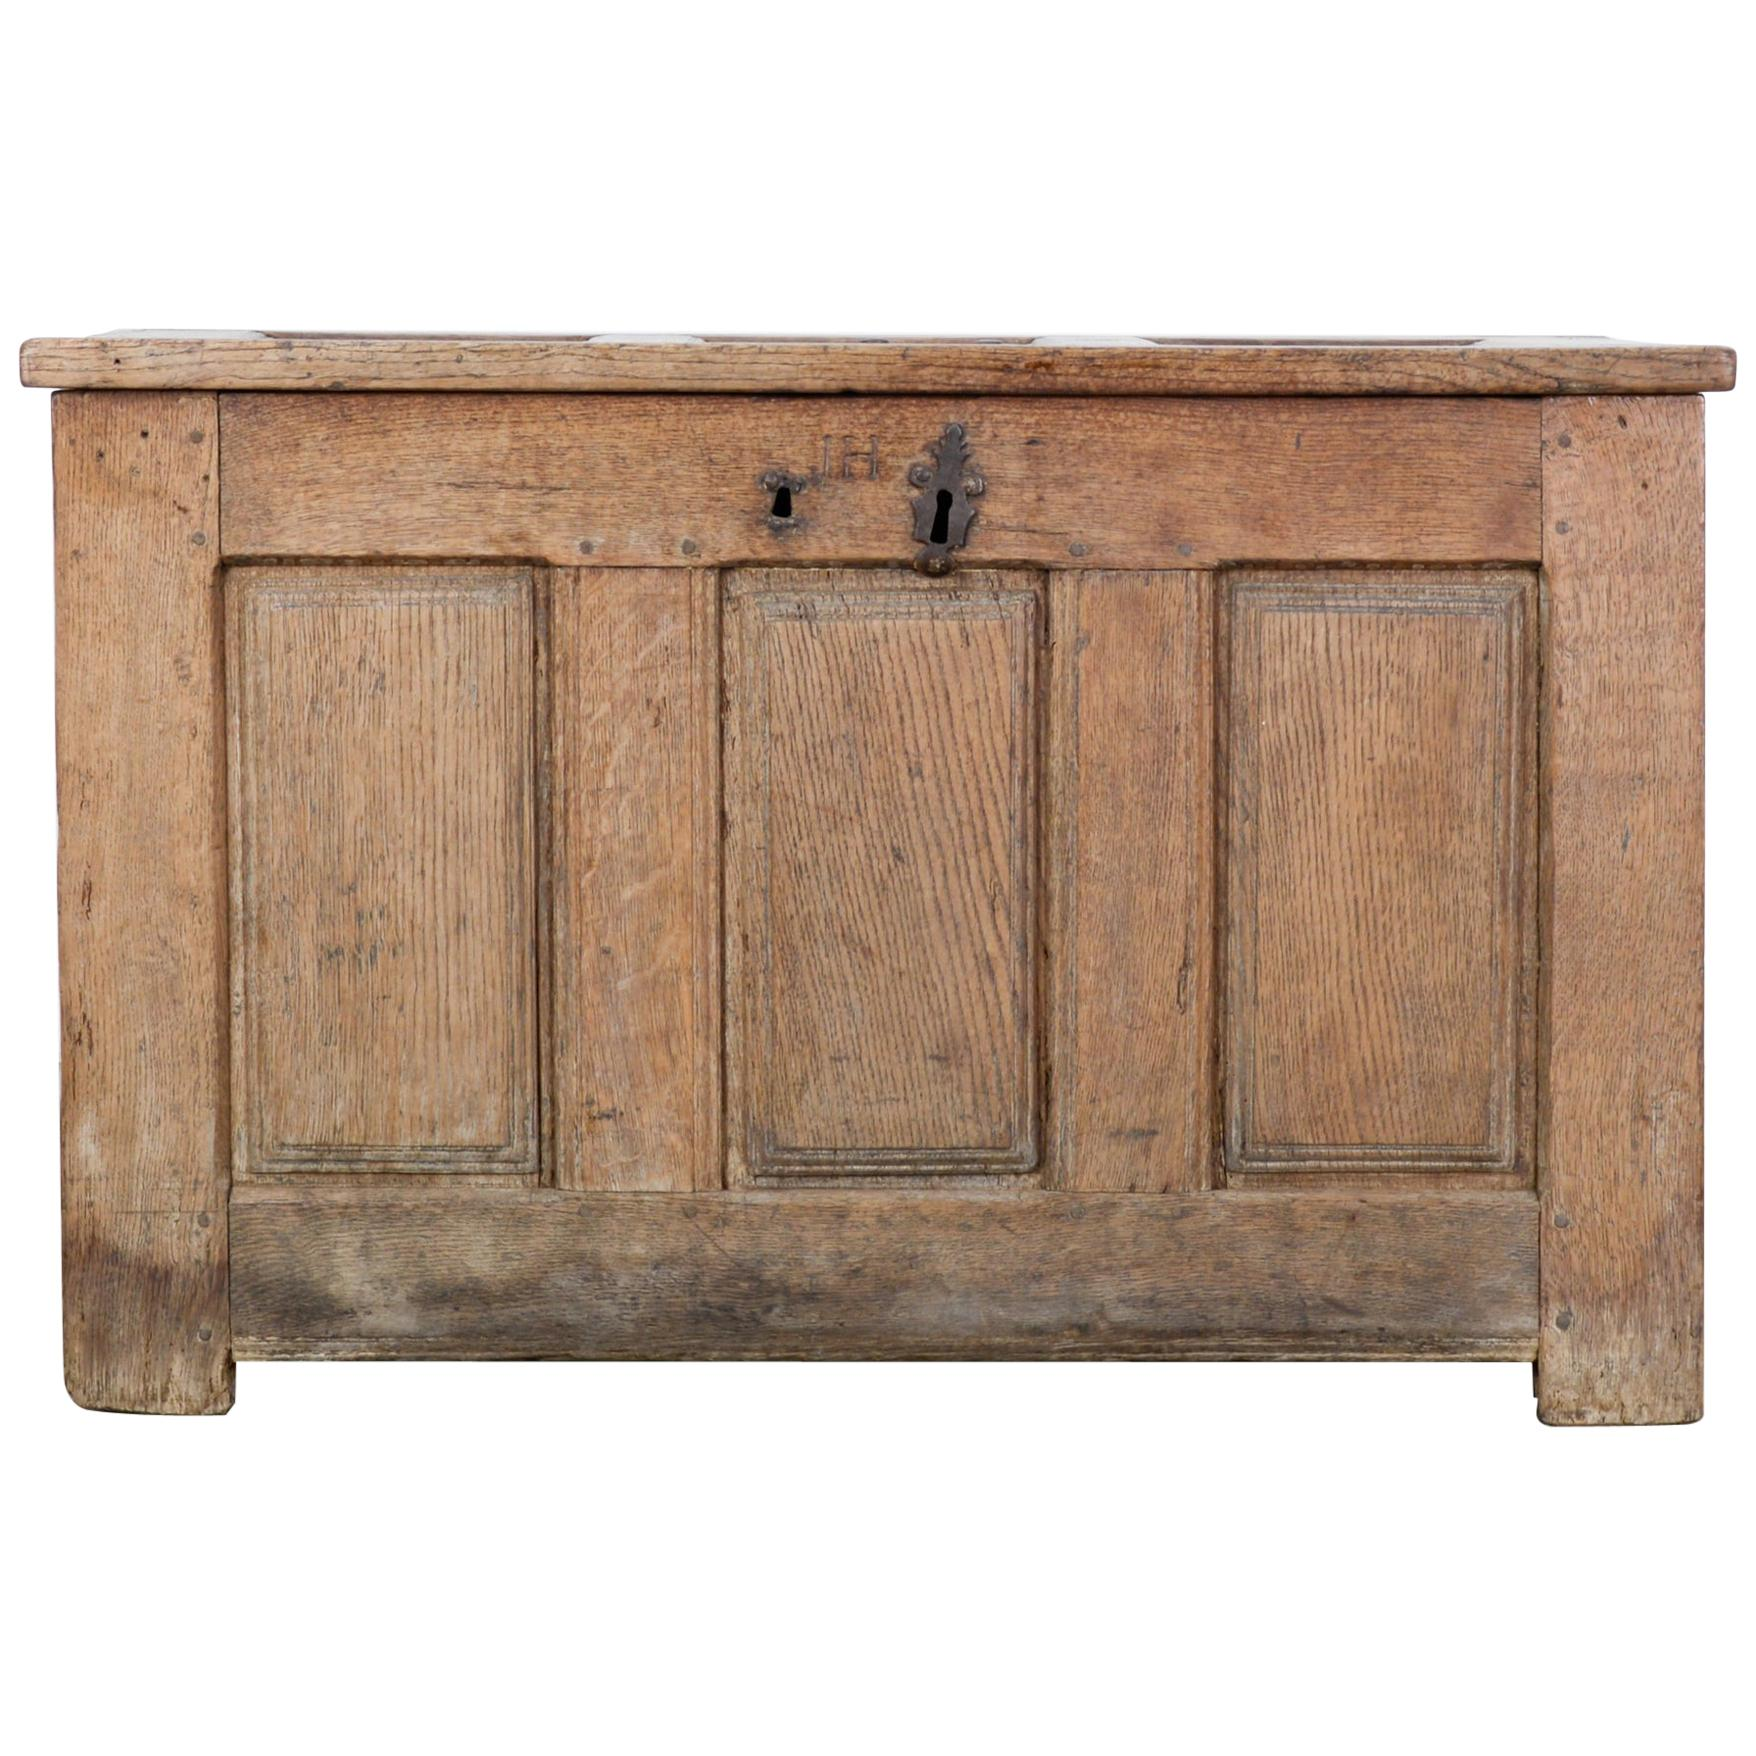 1820s French Wooden Trunk